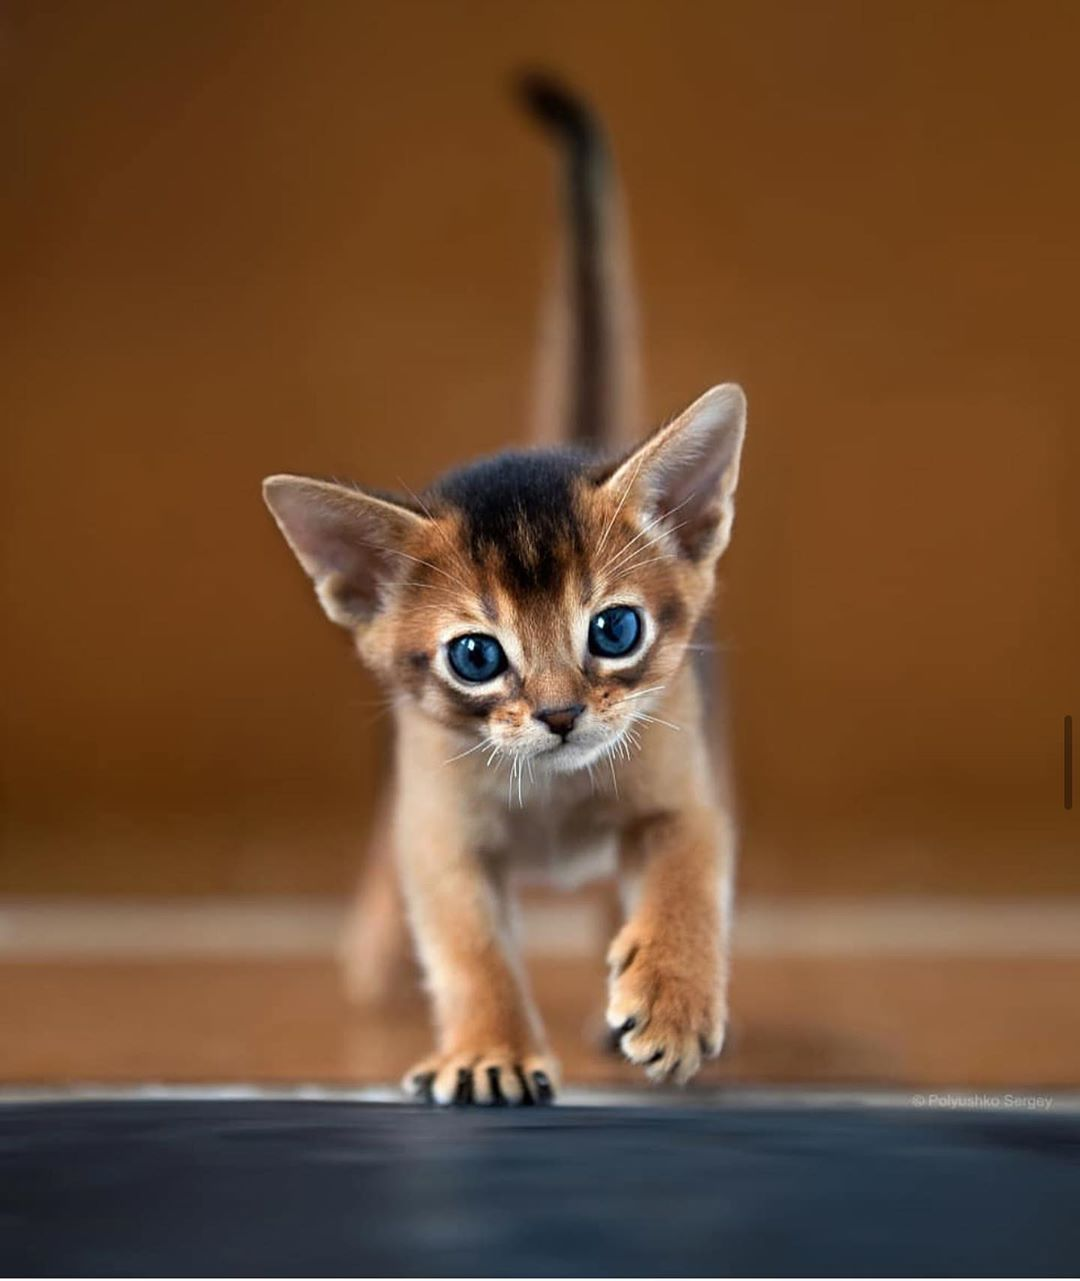 803 Likes 4 Comments Gorgeous Insta Shots Photographerswishes On Instagram Mekong Bobtail Kitten Kitt In 2020 Abyssinian Kittens Animals Cute Animals